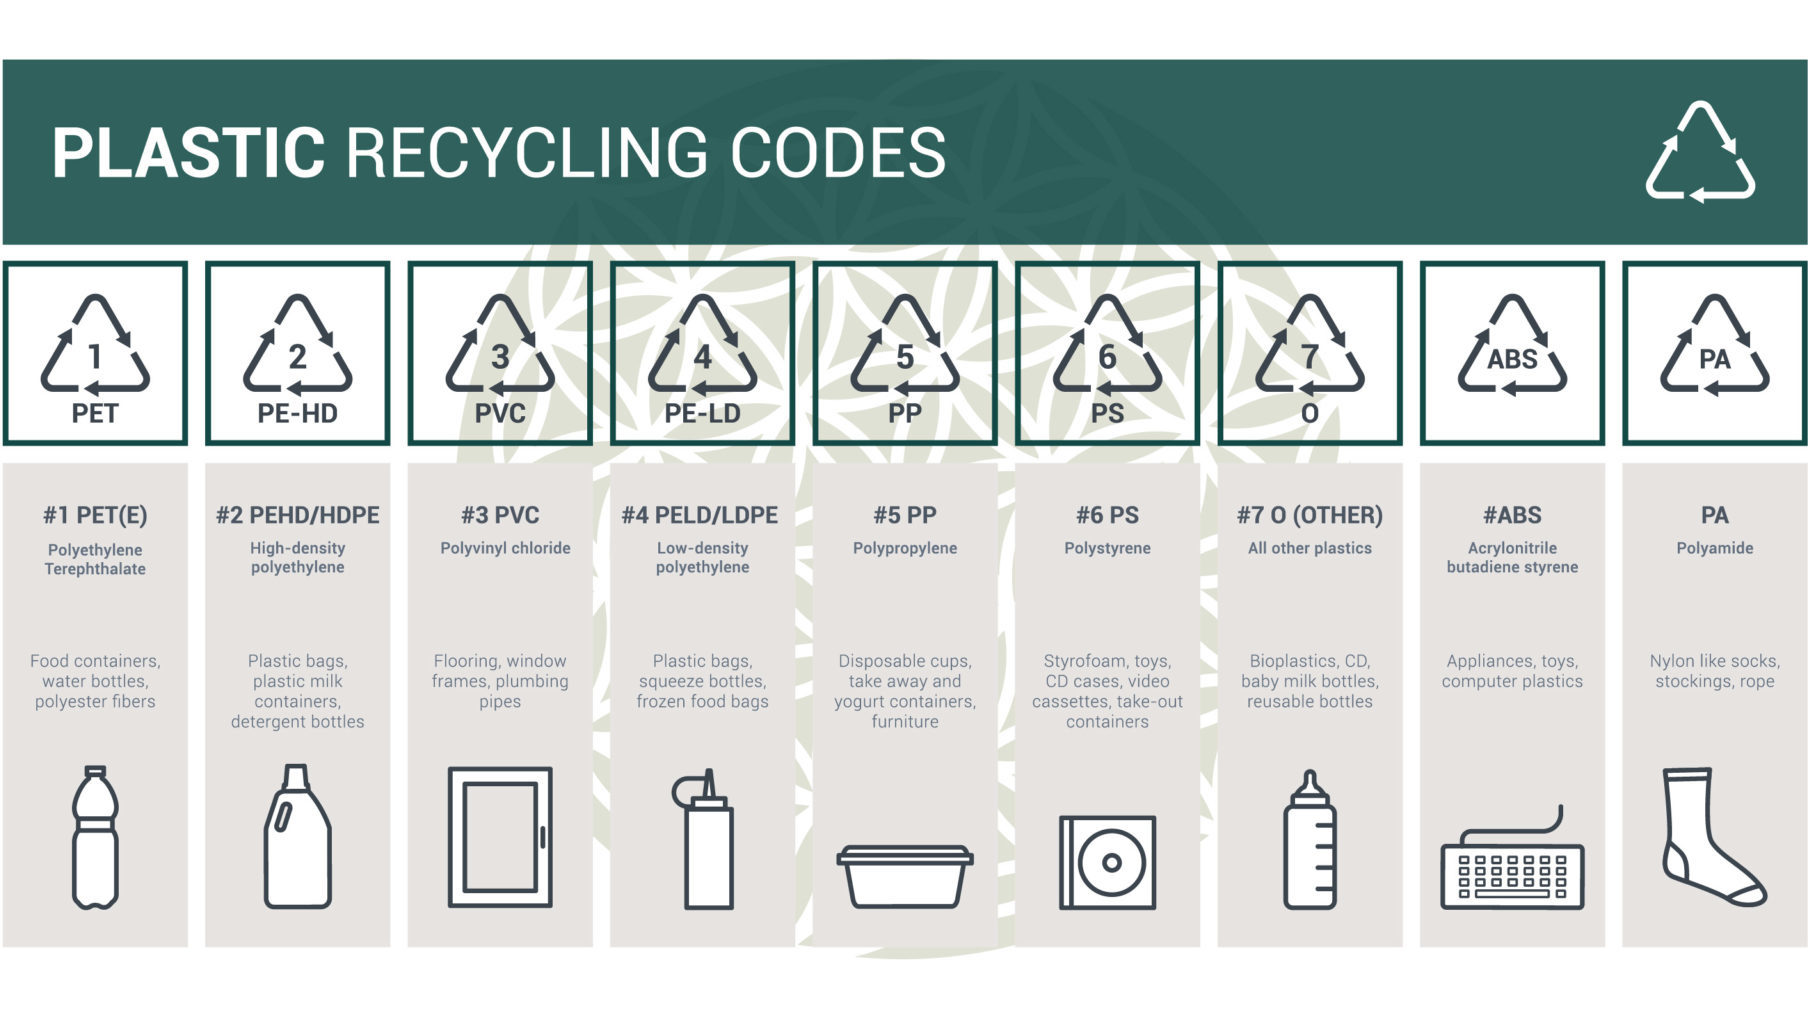 Plastic Recycling Codes - The Deadly Impact of Plastic on the Planet - Part 1